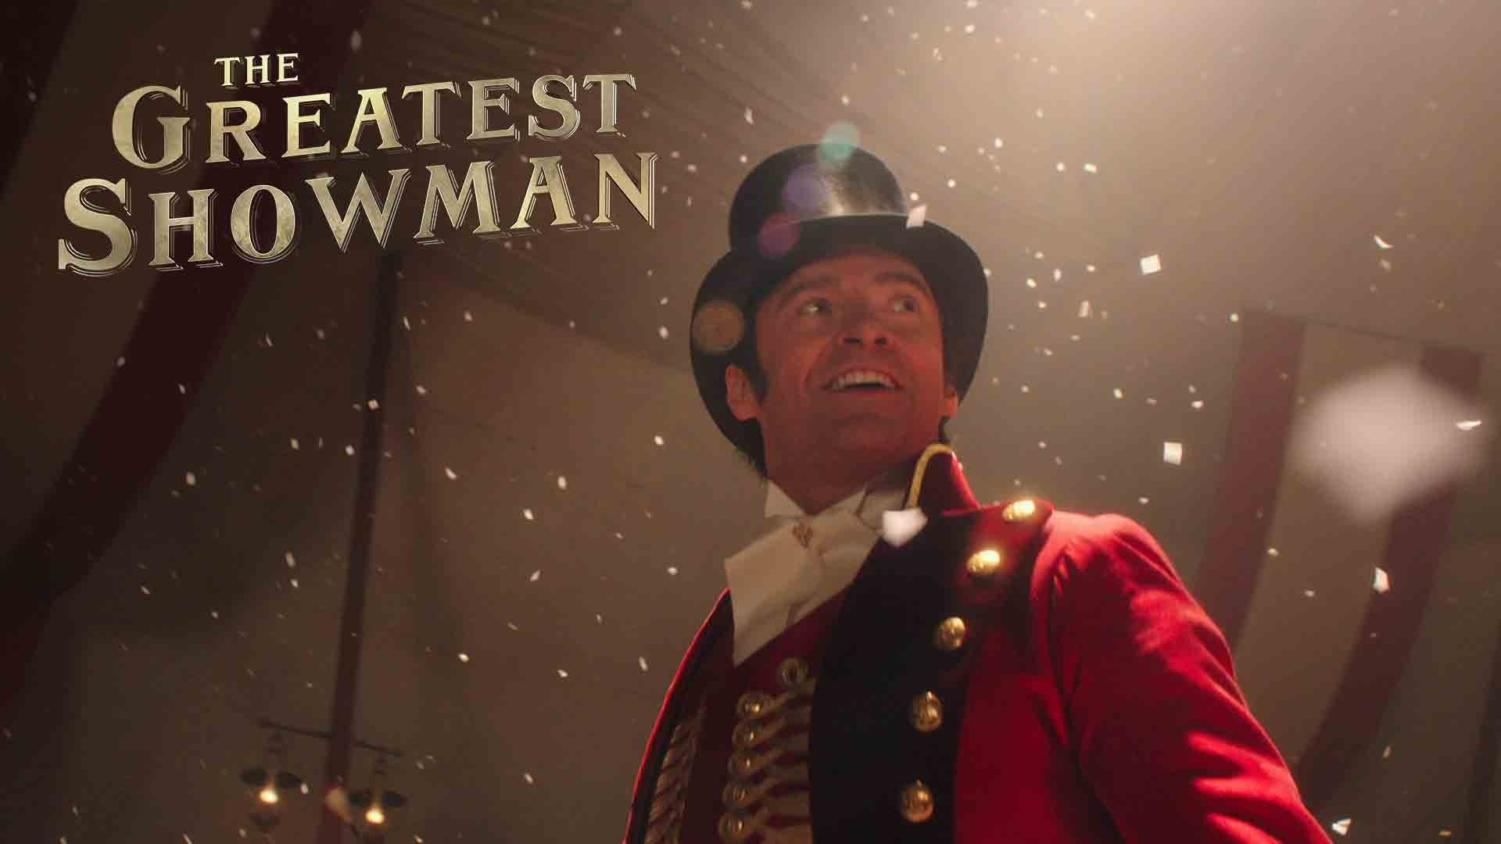 The Greatest Showman debuted Dec. 8, 2017. (Photo by: 20th Century Fox)